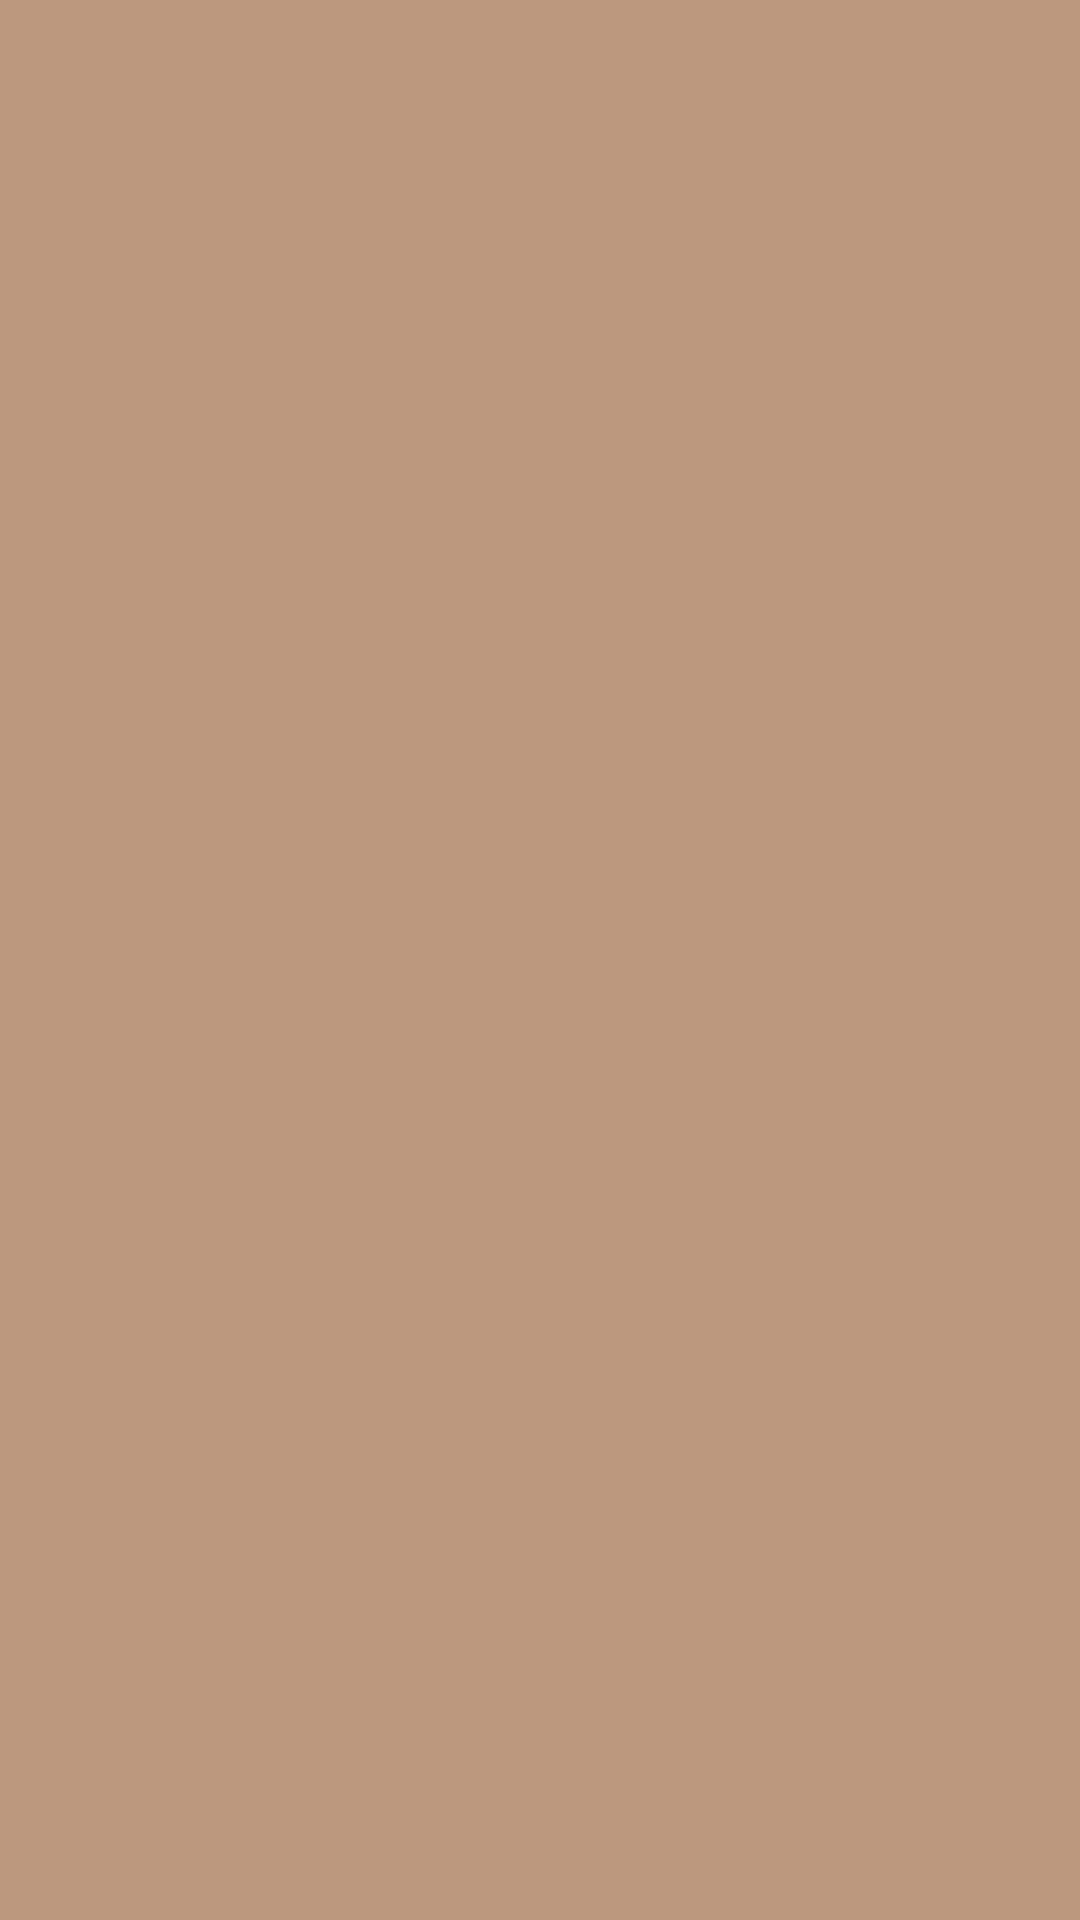 1080x1920 Pale Taupe Solid Color Background